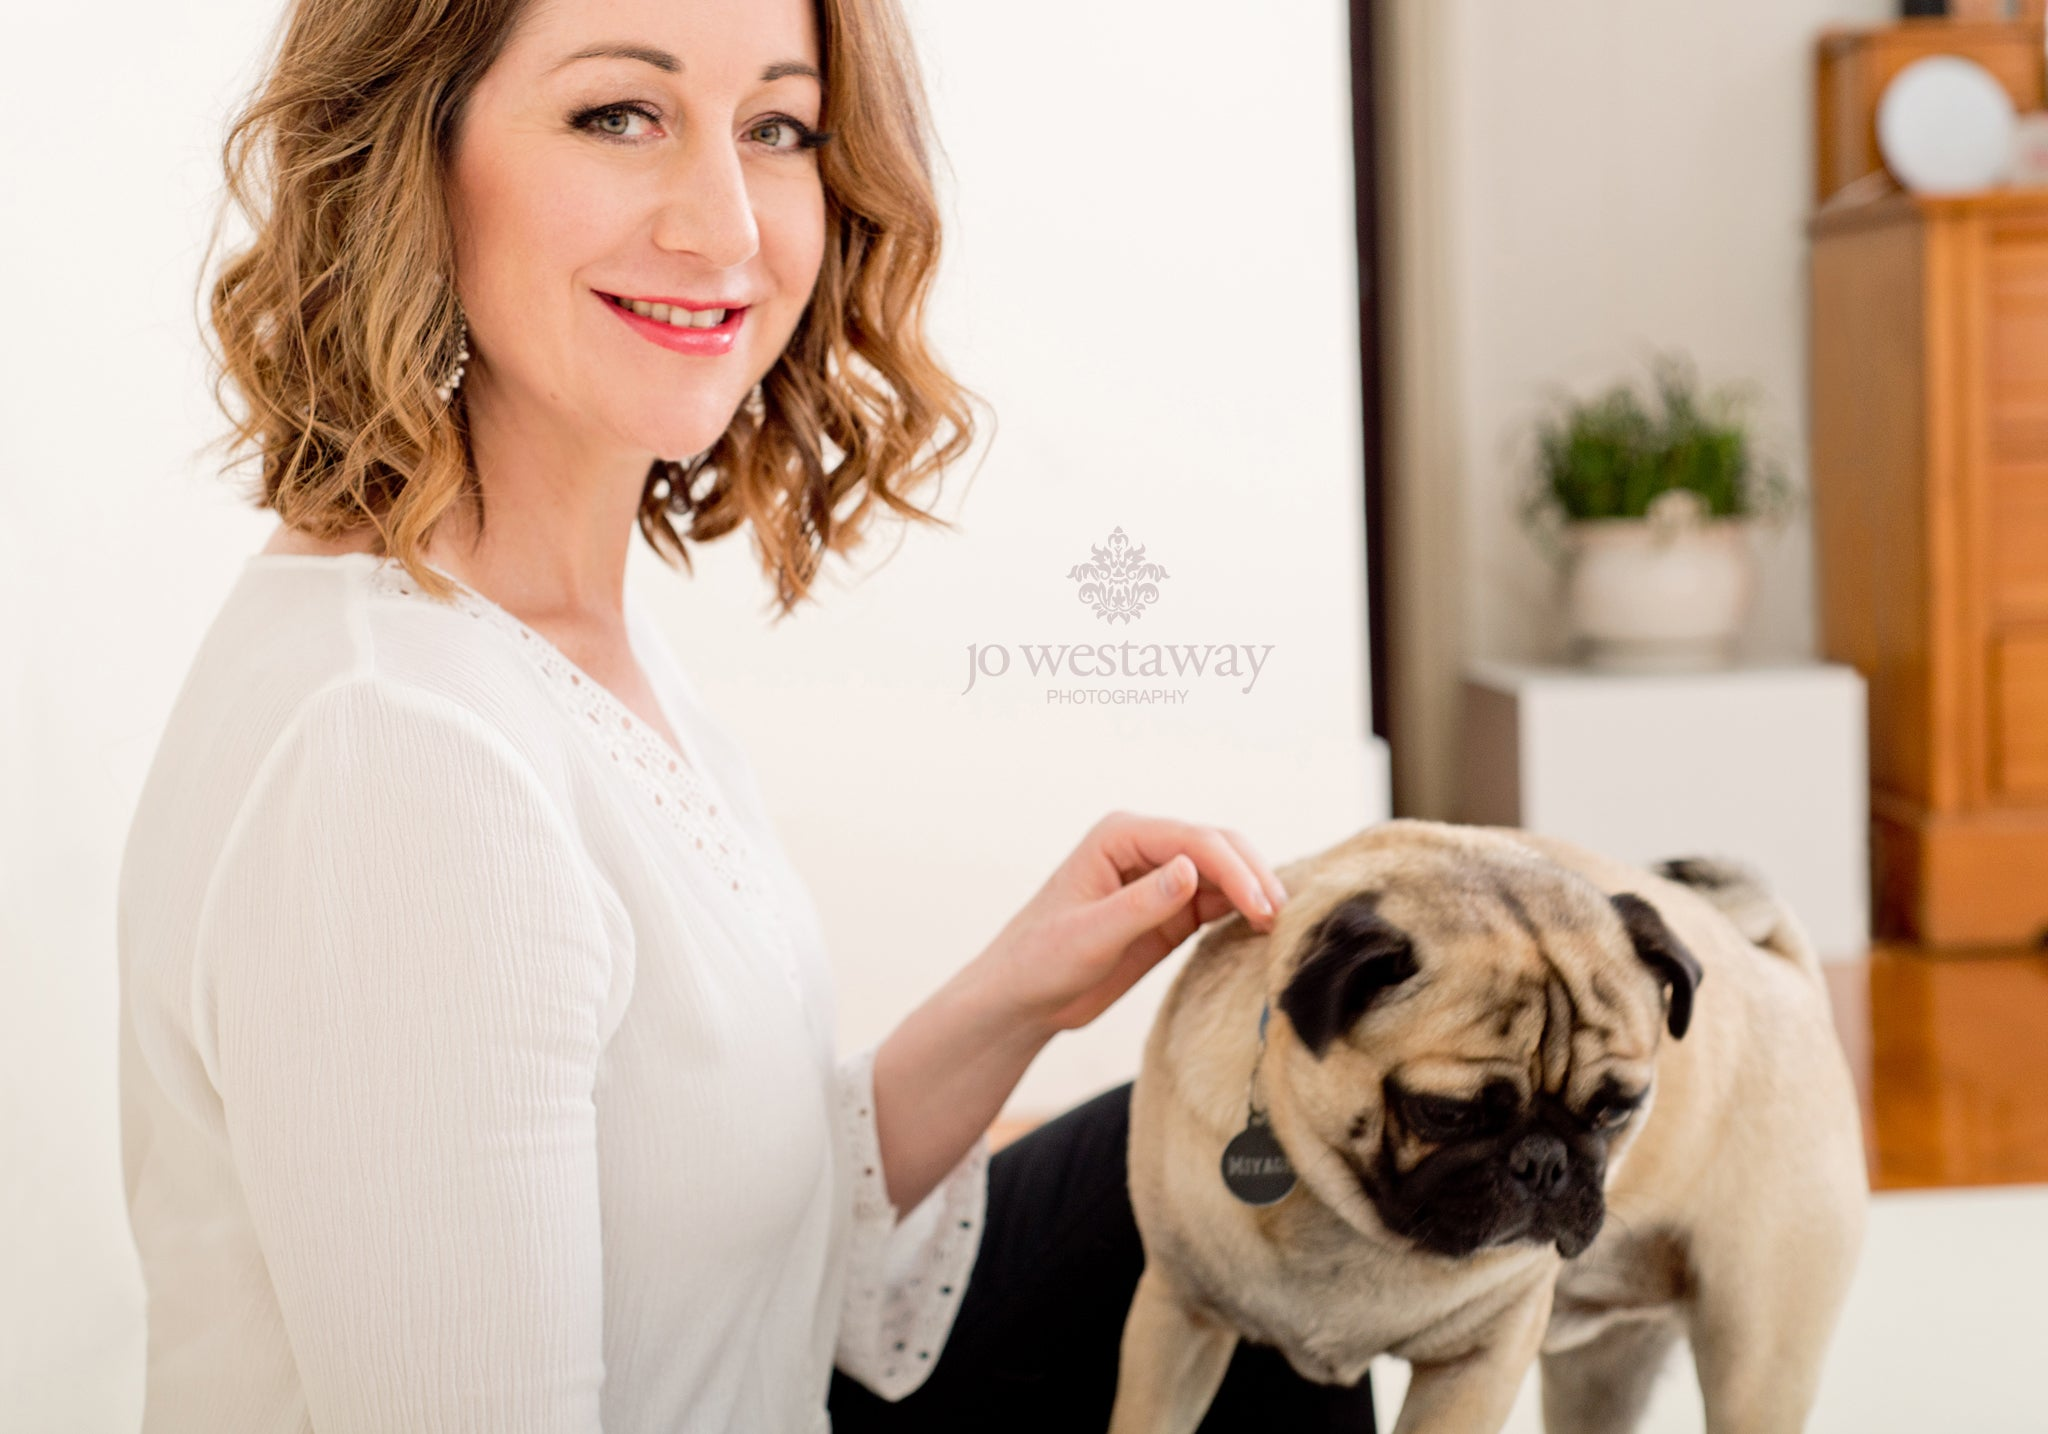 Pets in business and personal branding photography sessions - bring your dog to work